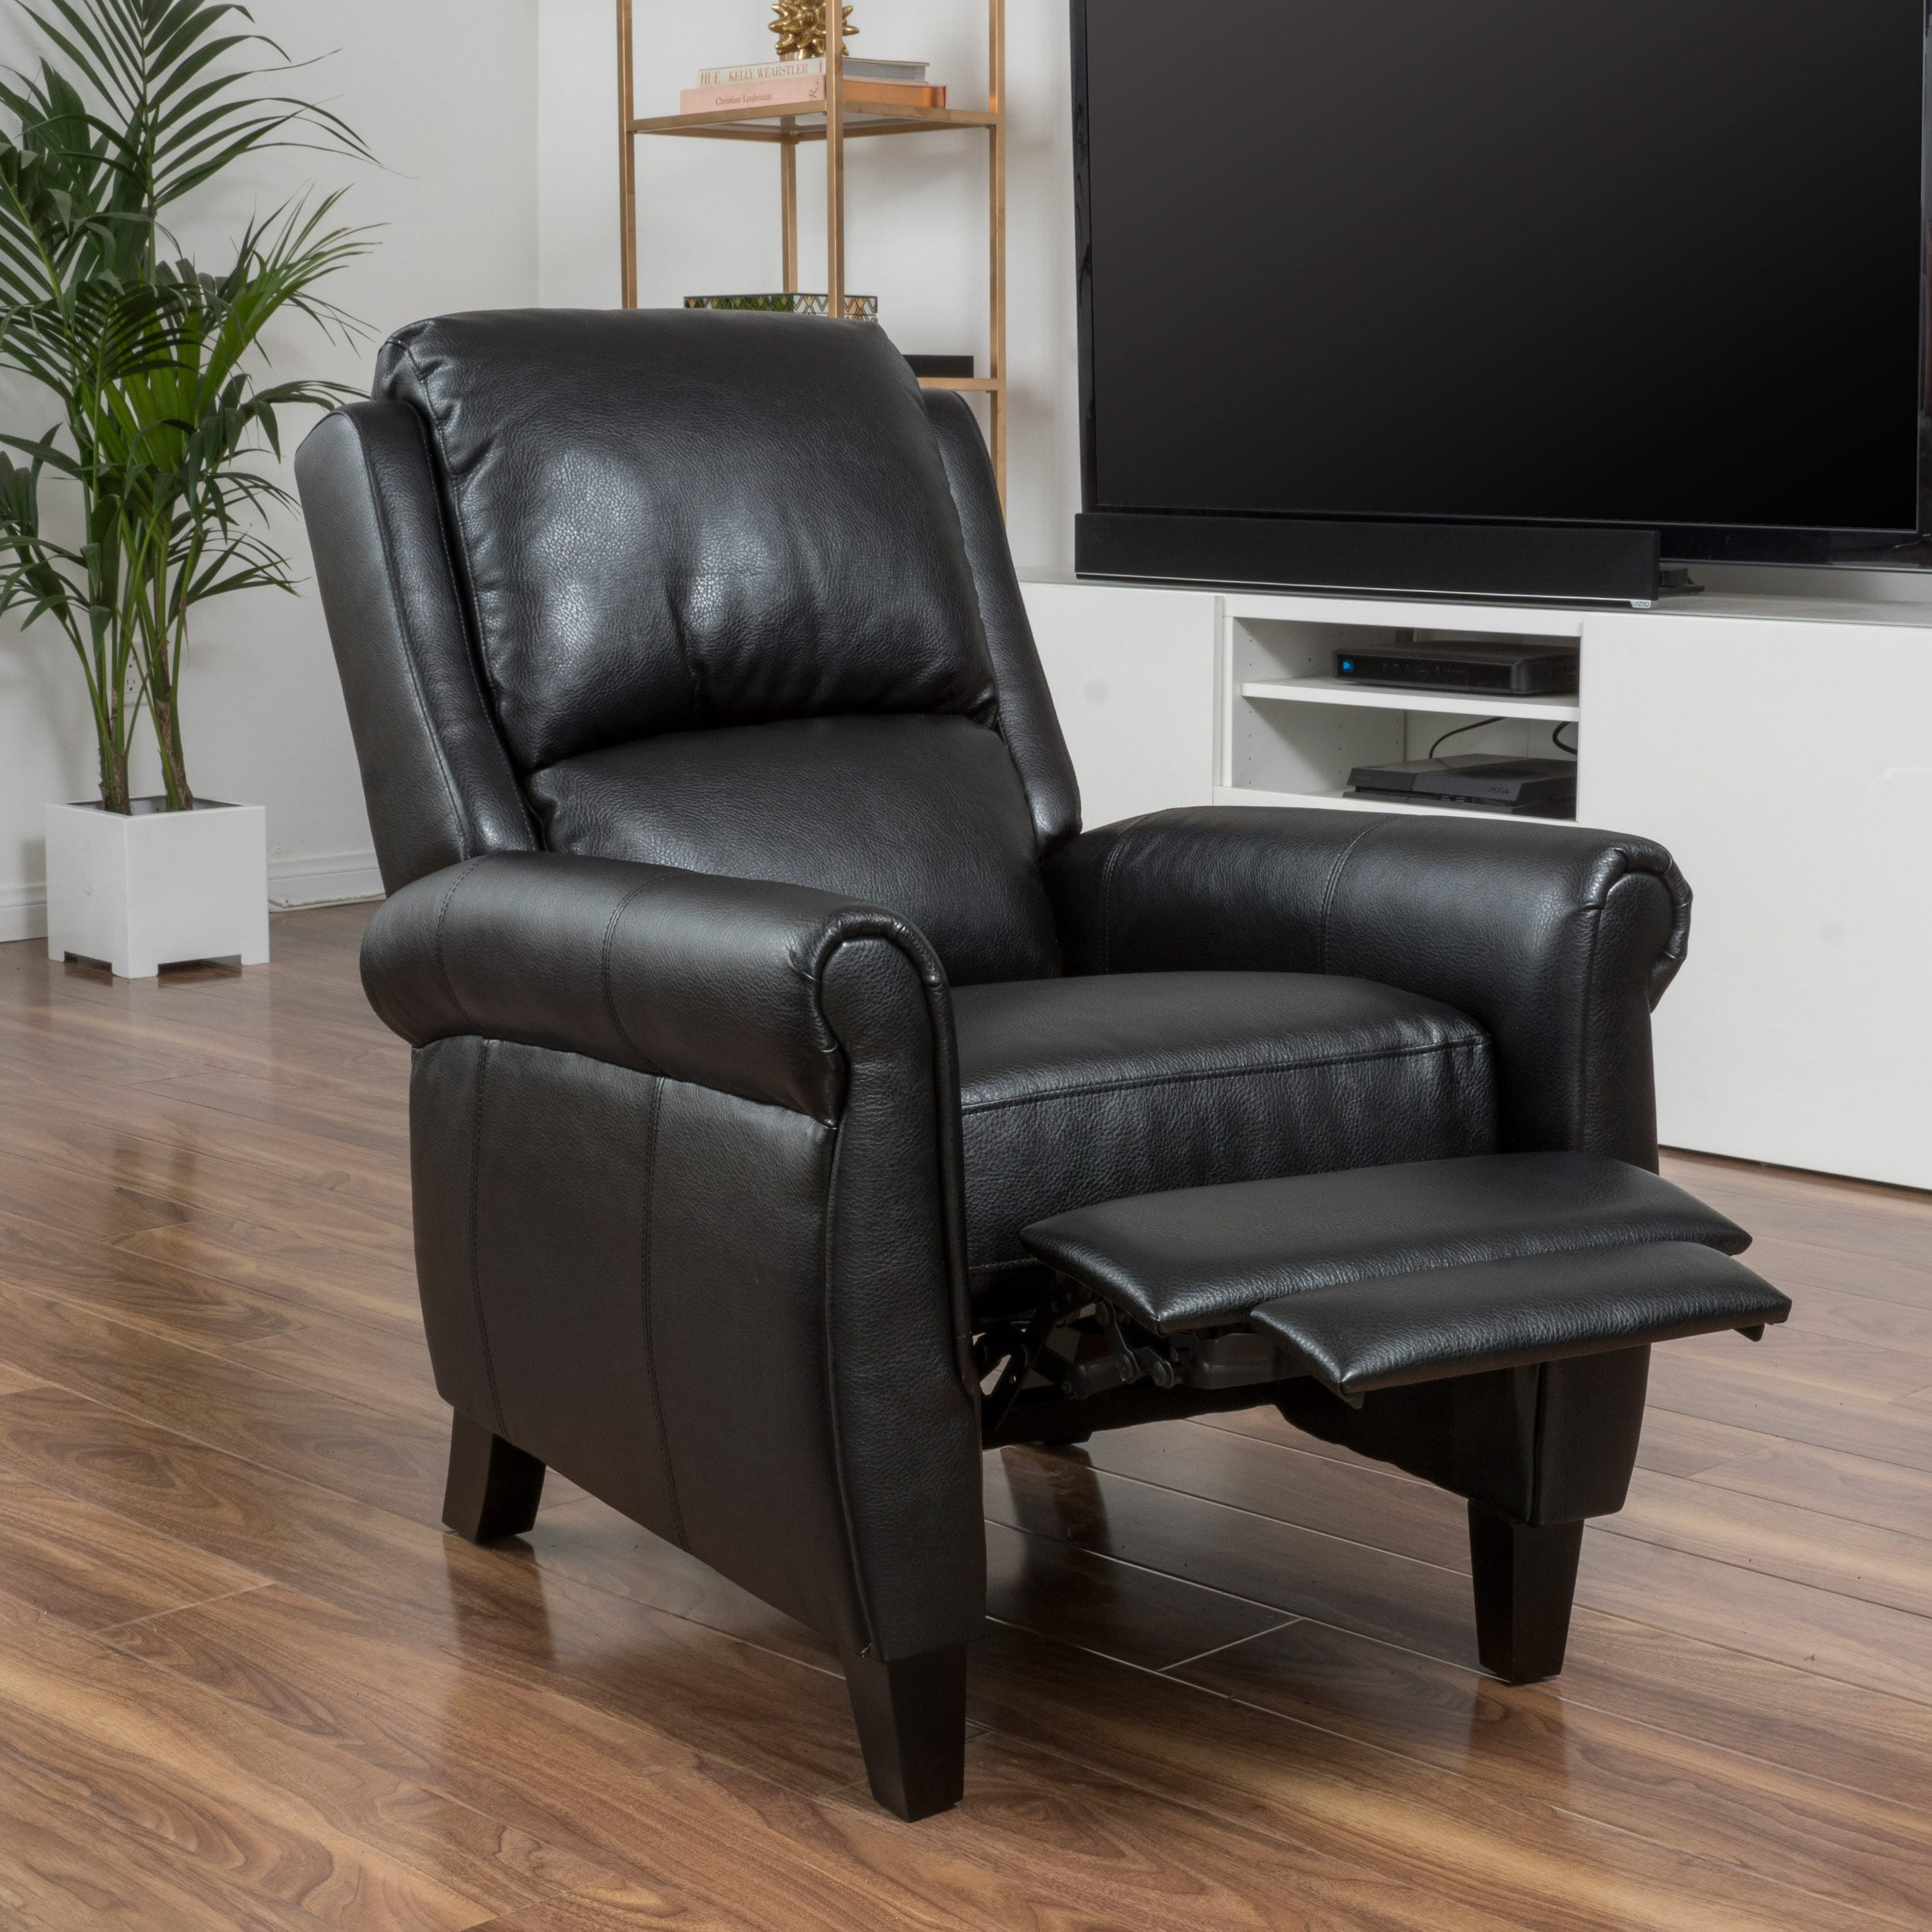 Haddan PU Leather Recliner Club Chair By Christopher Knight Home For  $164.54 (Was $244) + Free Shipping.